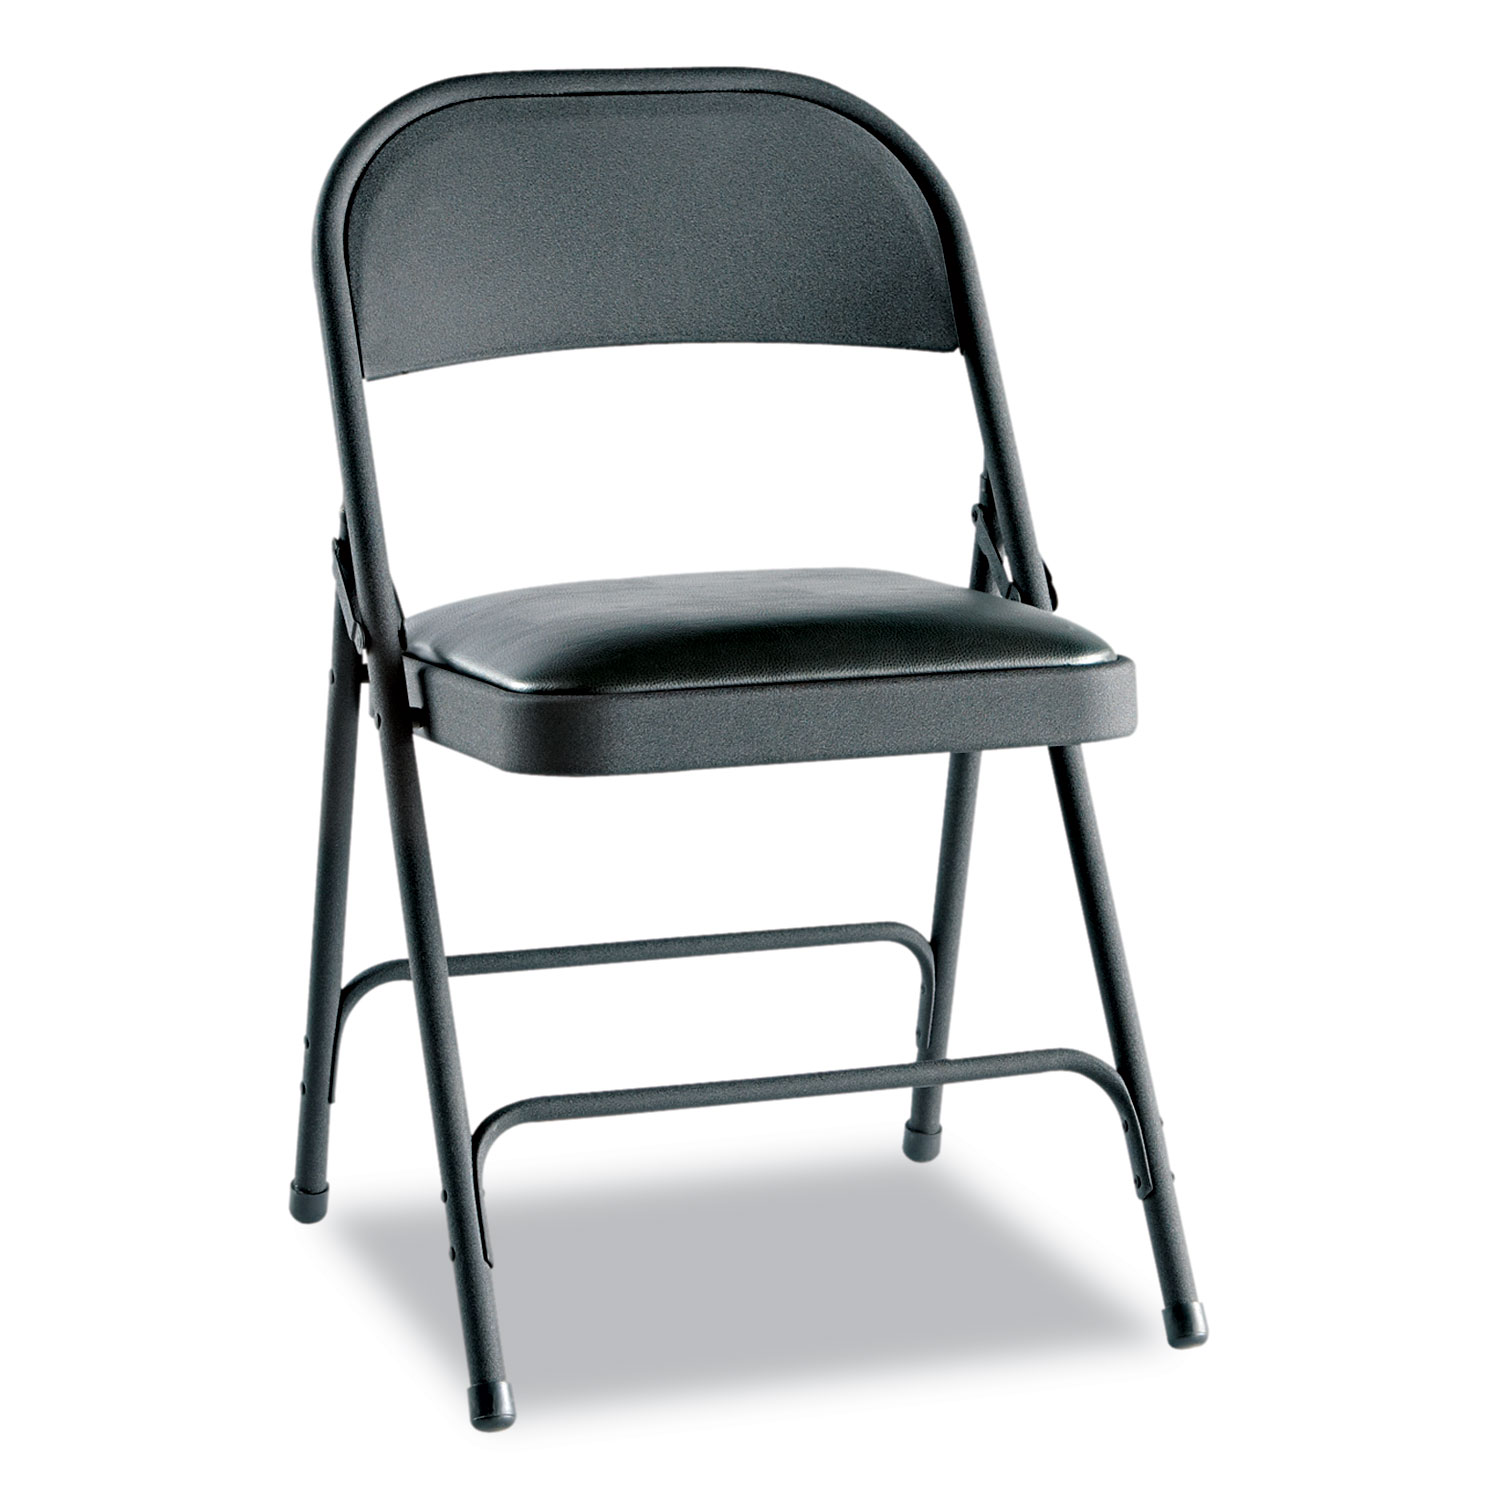 Steel Folding Chair Steel Folding Chair With Two Brace Support By Alera